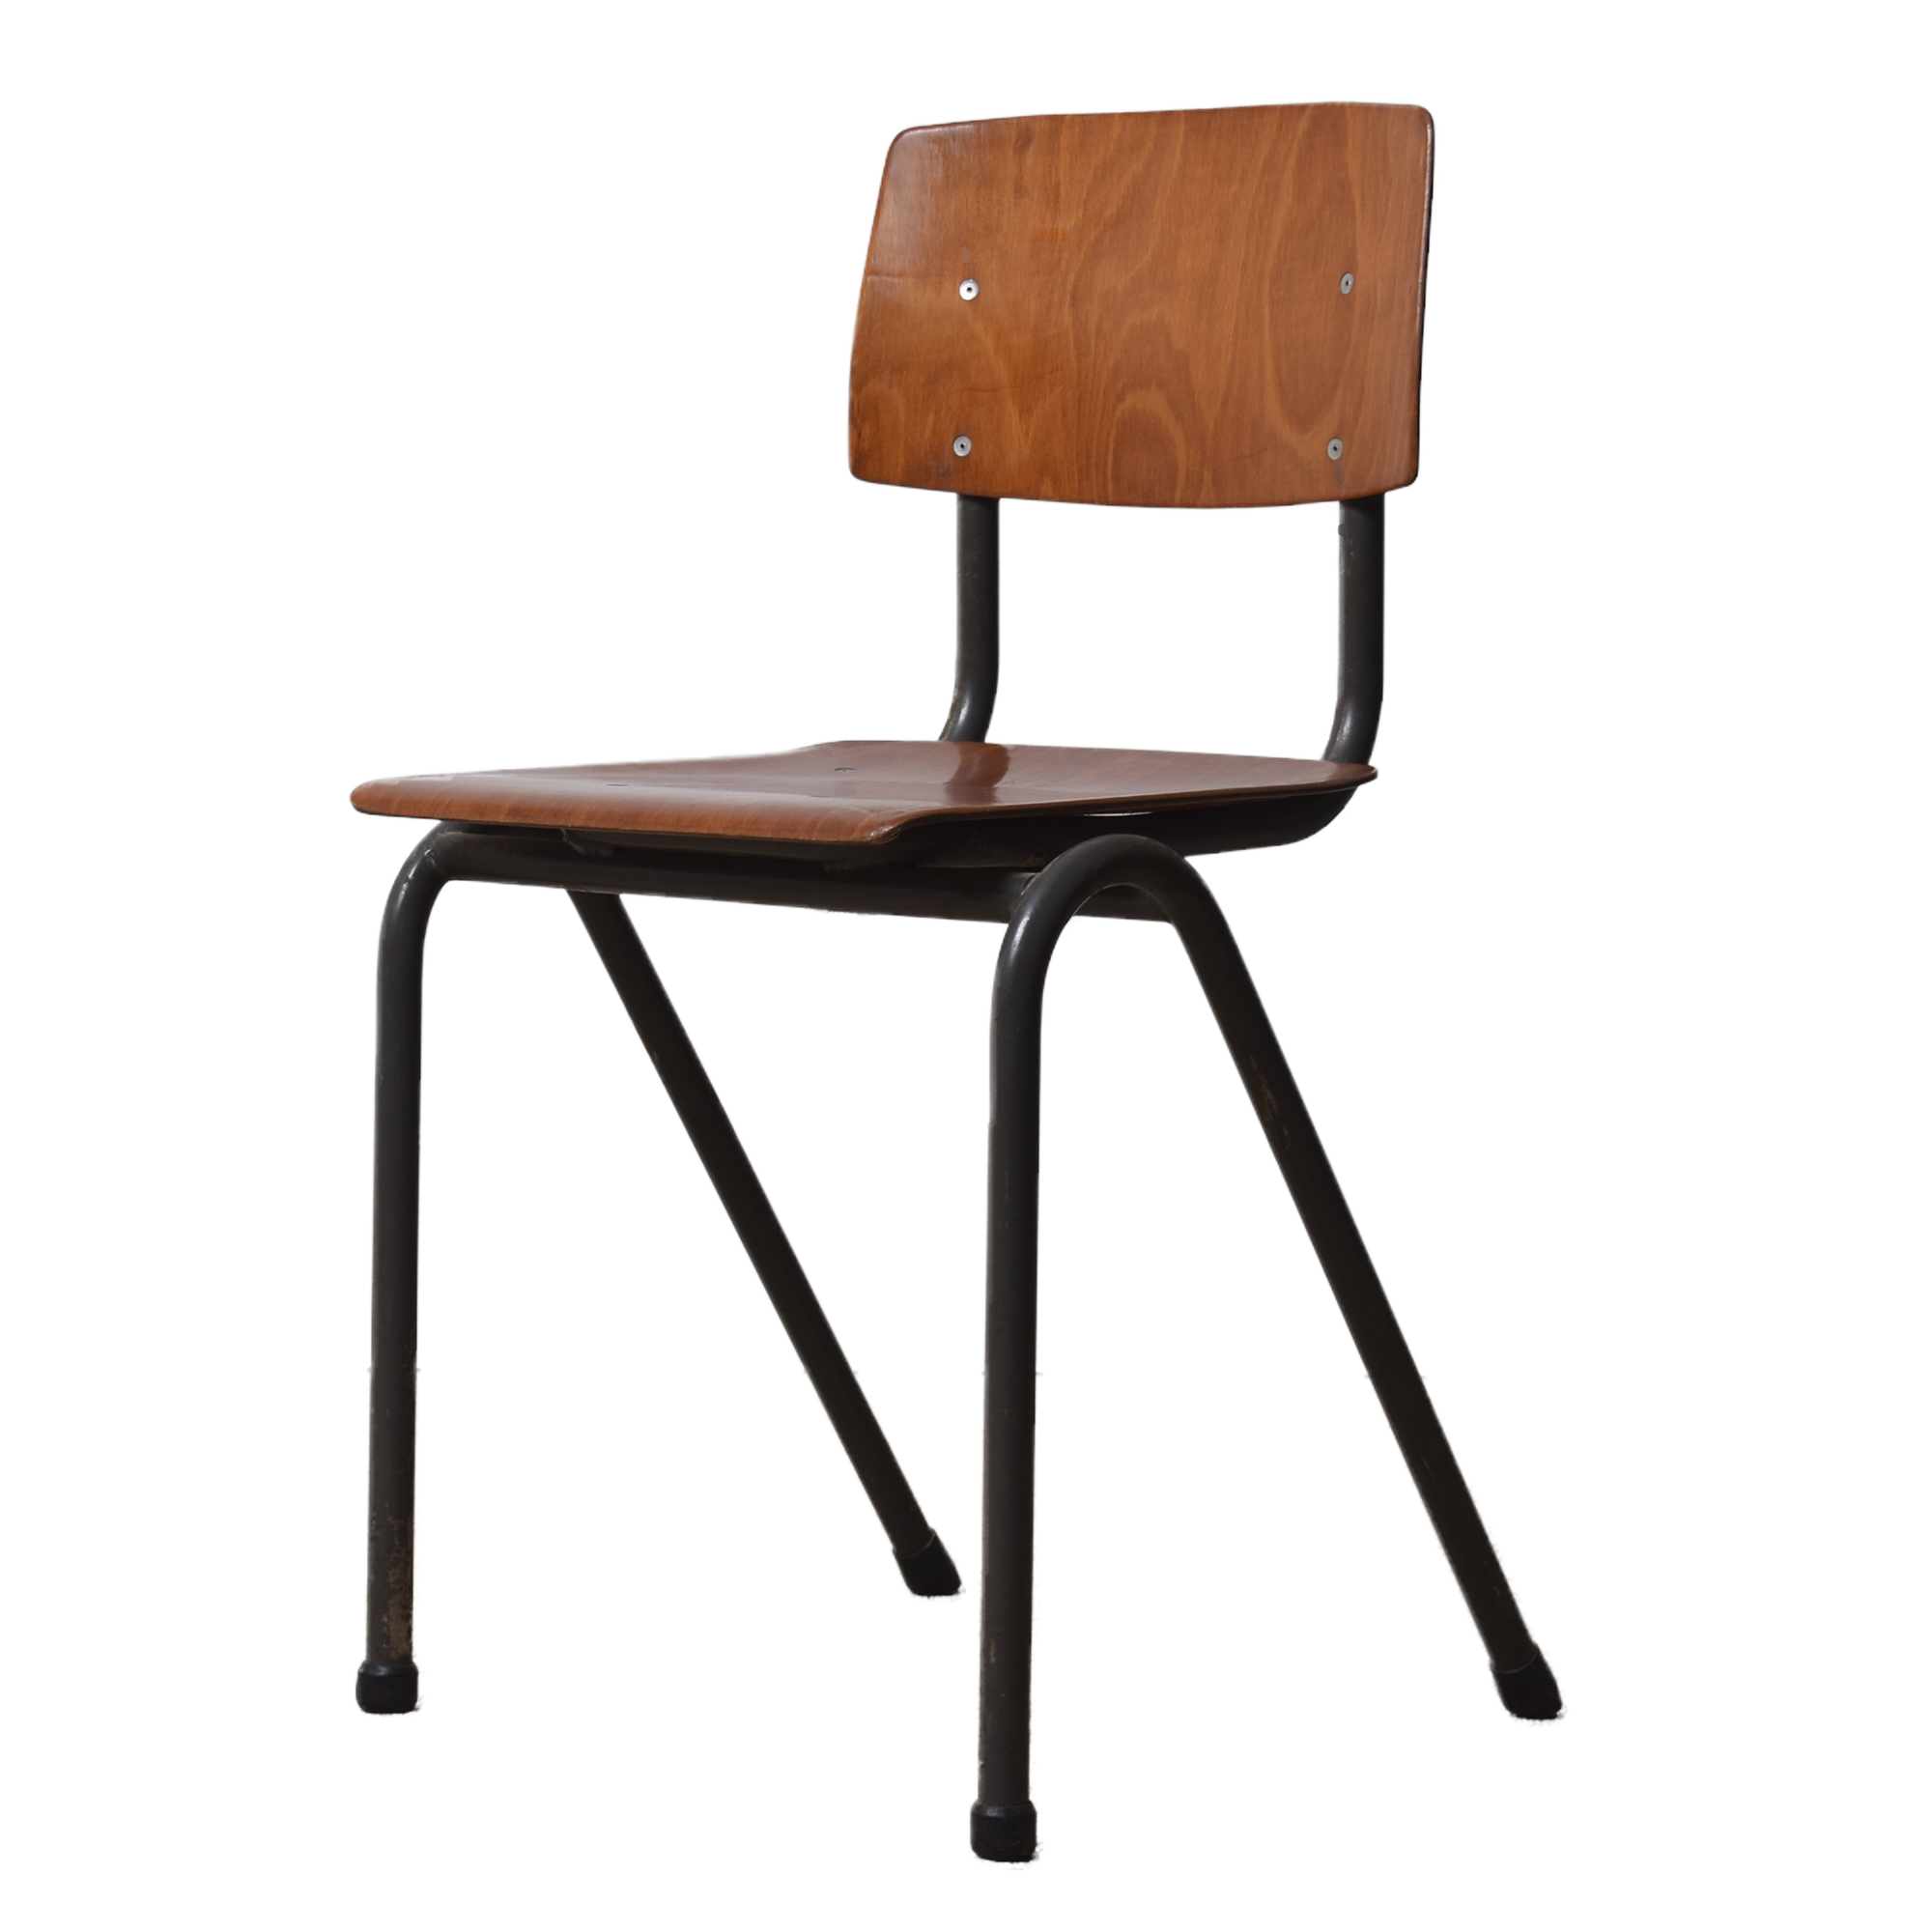 Vintage School Chairs 22x Brown Children S School Chair